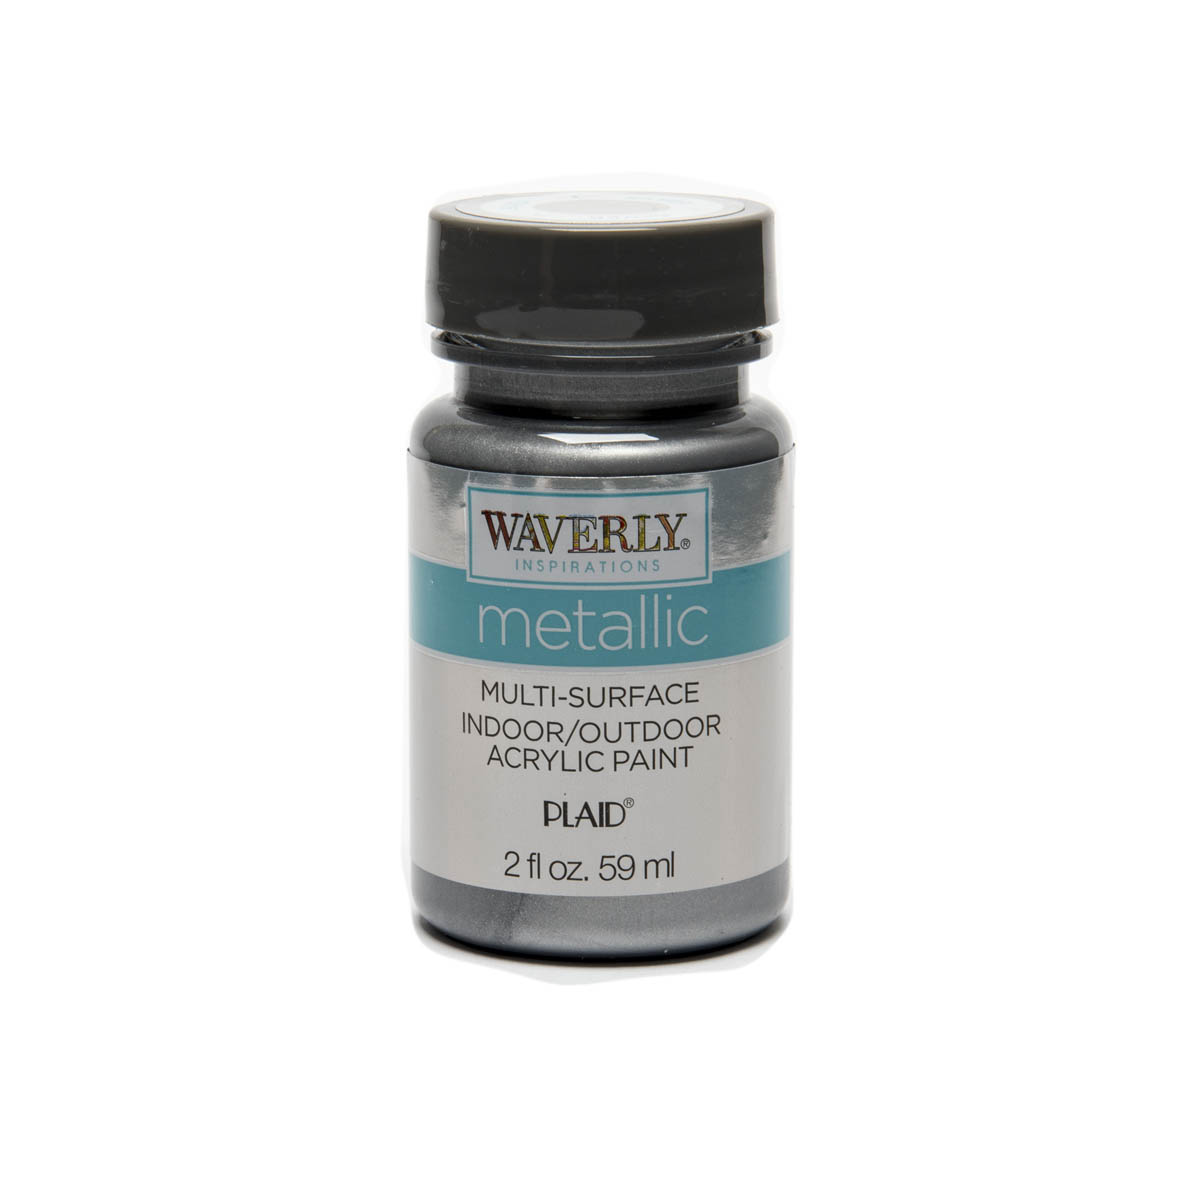 Waverly ® Inspirations Metallic Multi-Surface Acrylic Paint - Silver, 2 oz. - 60923E